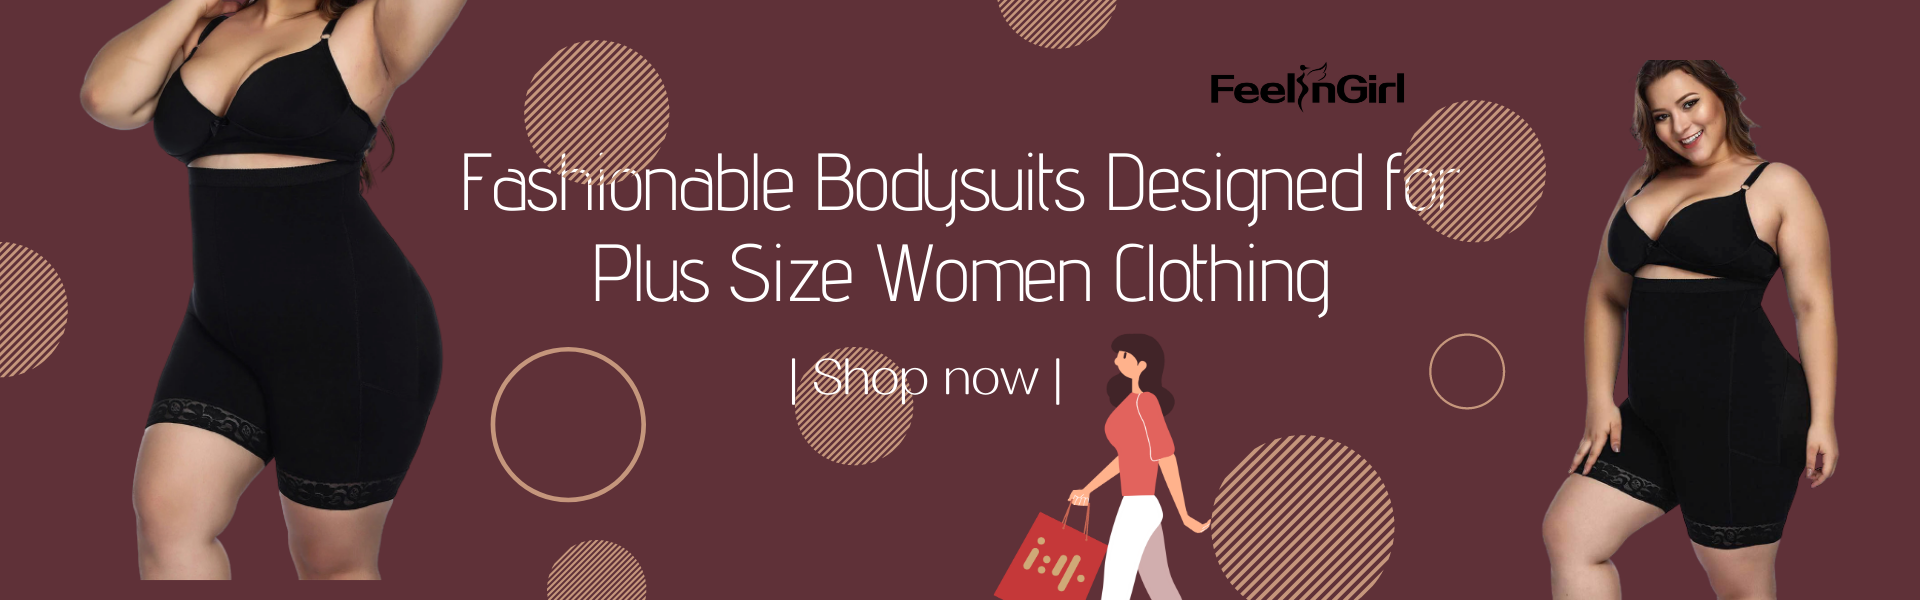 Fashionable Bodysuits Designed for Plus Size Women Clothing